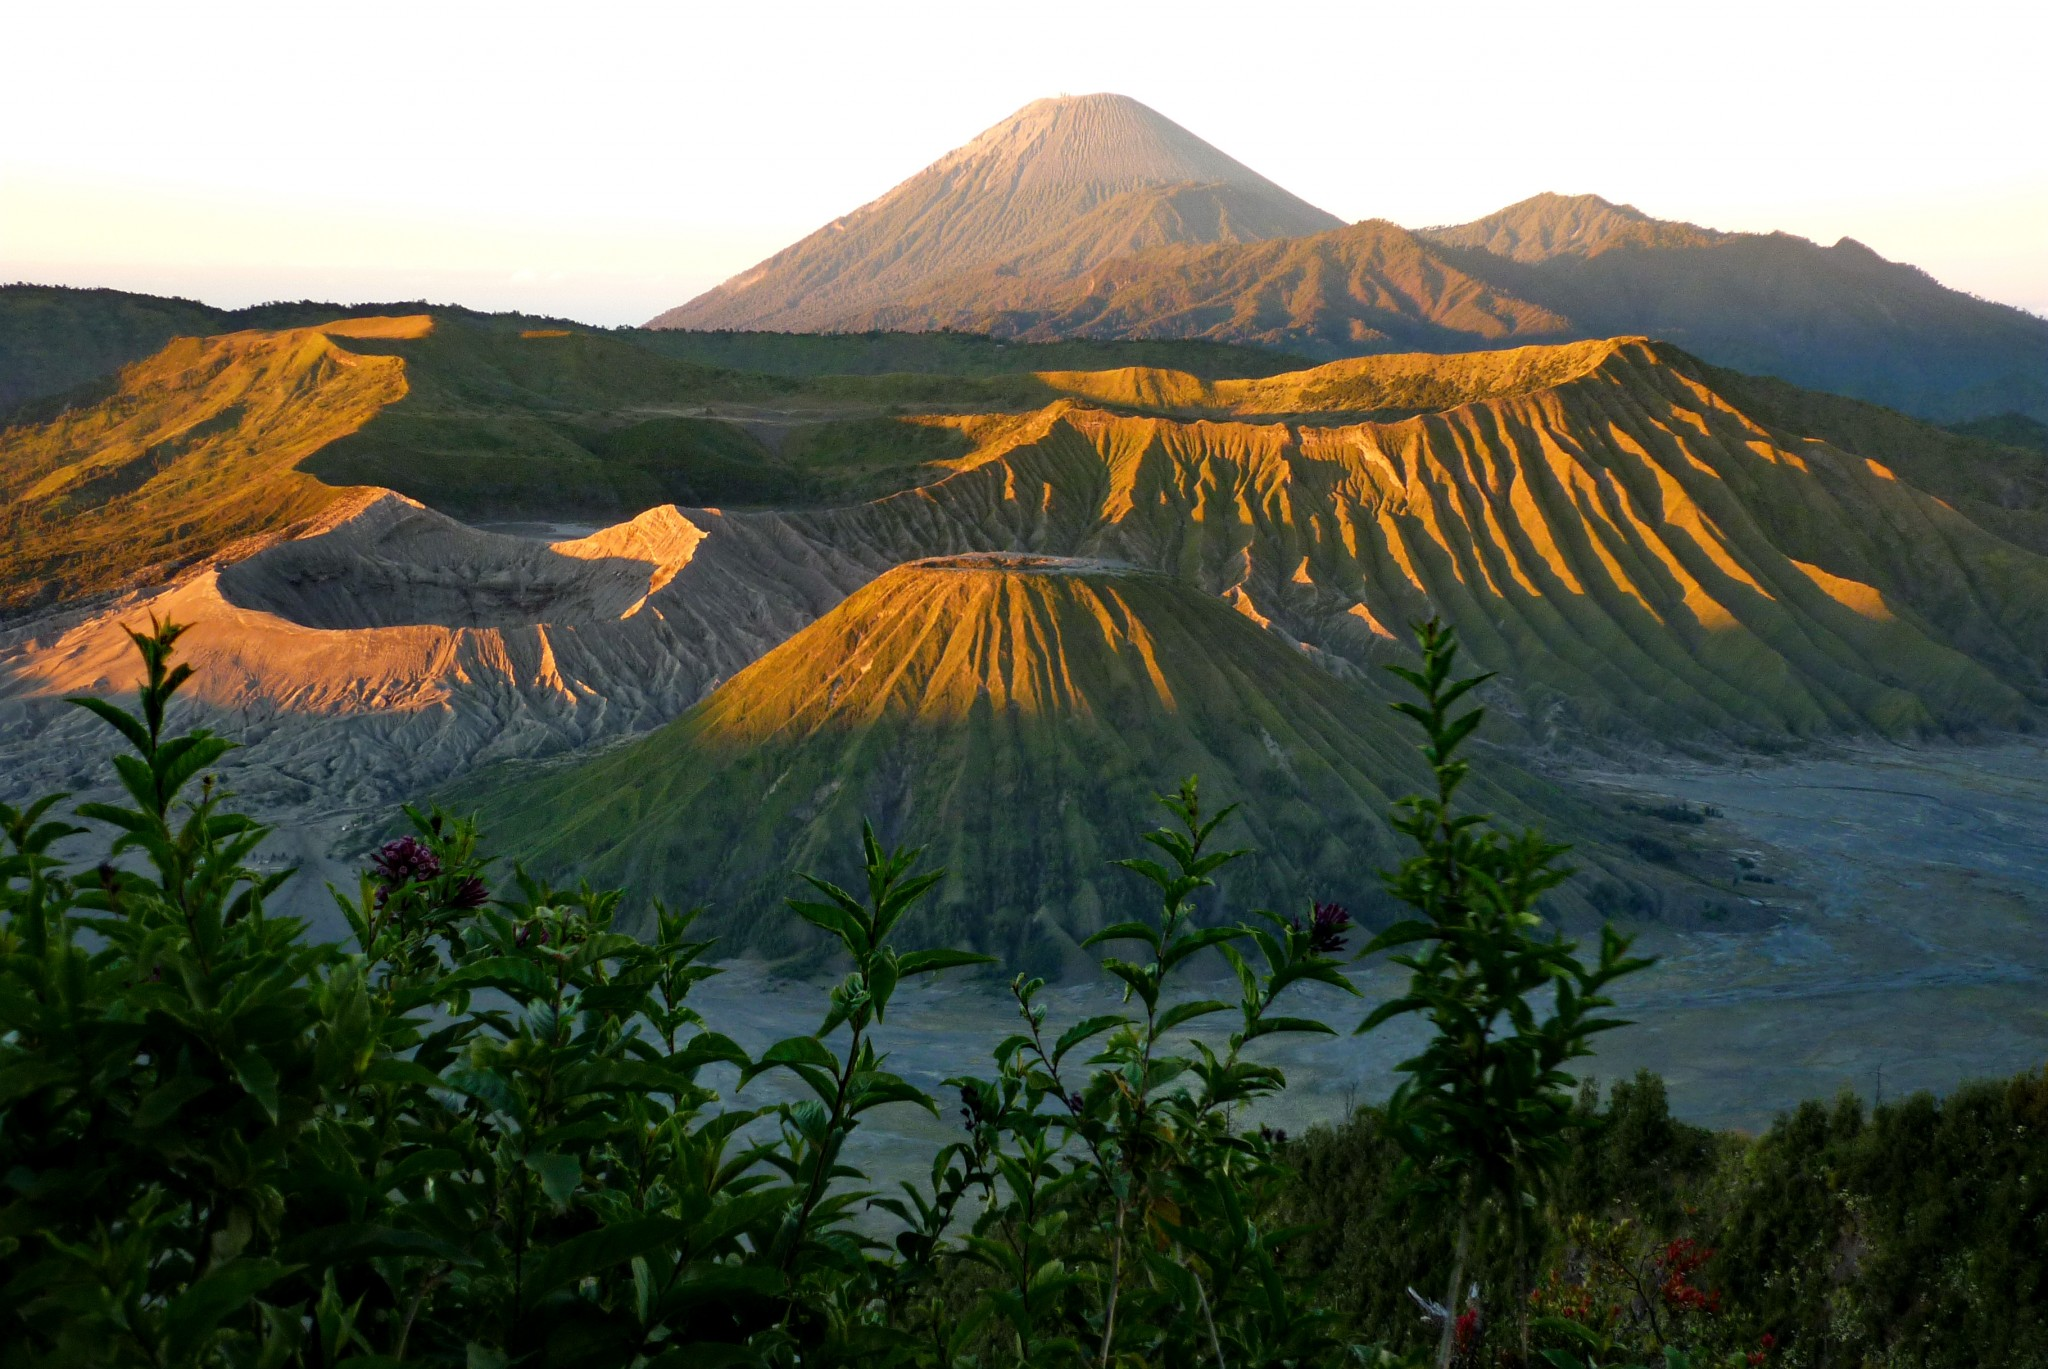 Indonesië, Bromokrater - Oost Java